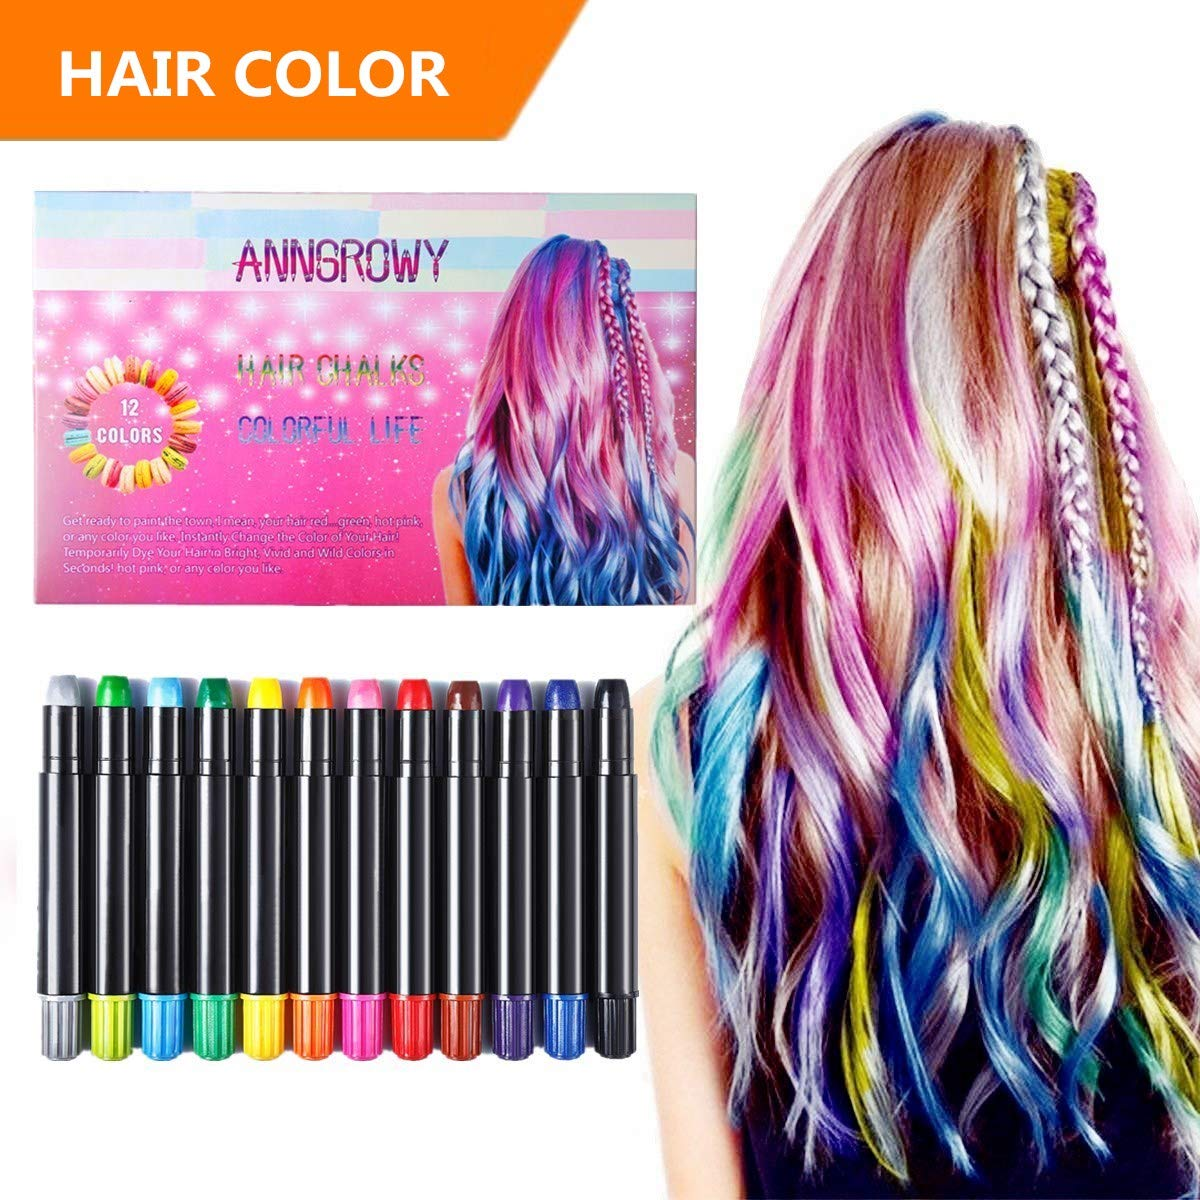 Amazon Anngrowy Hair Chalk For Girls Kids Birthday Gifts For